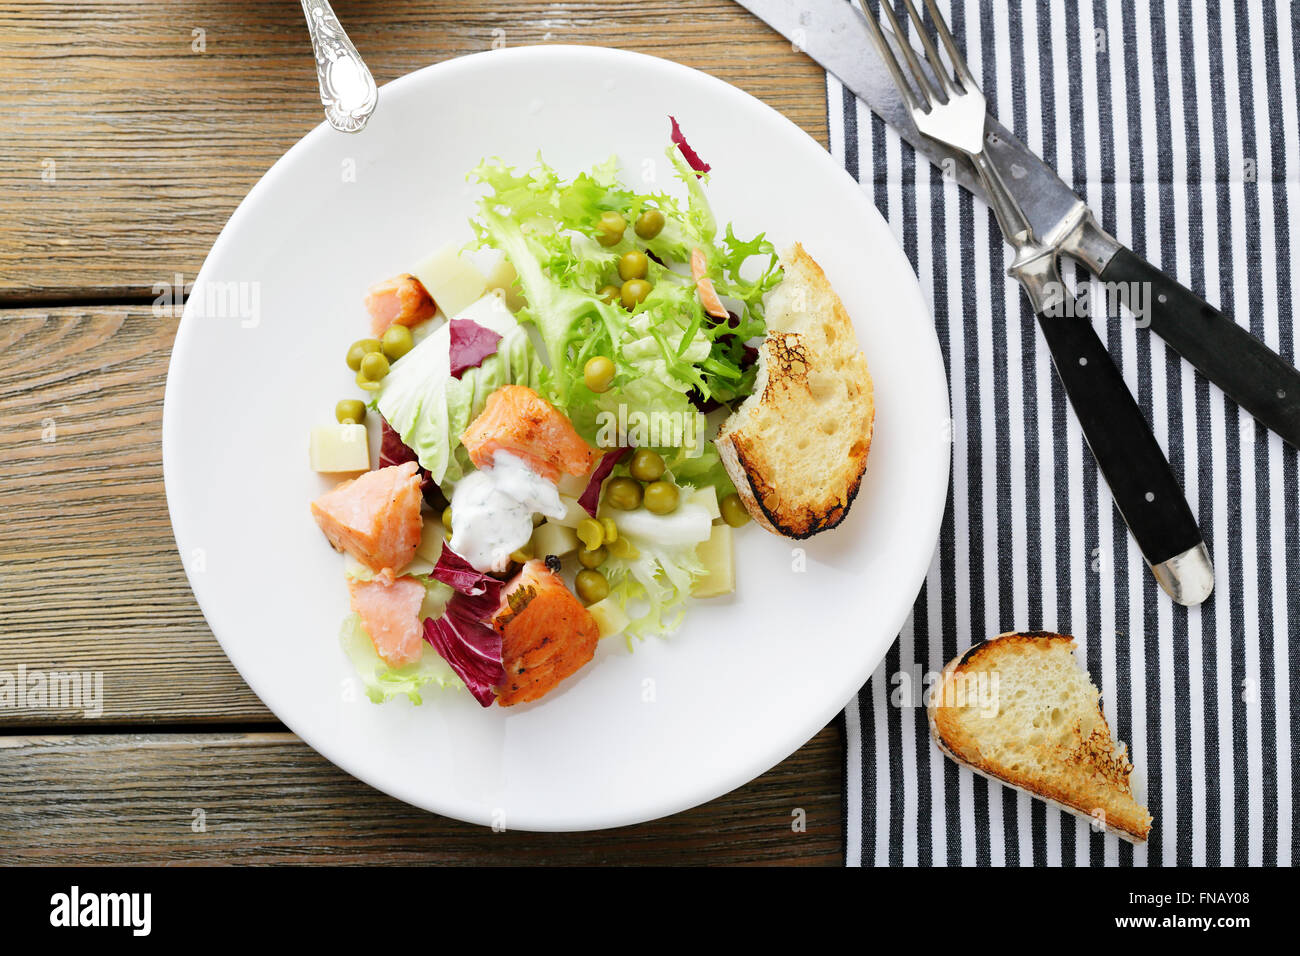 salad with slice of roasted fish, food top view - Stock Image